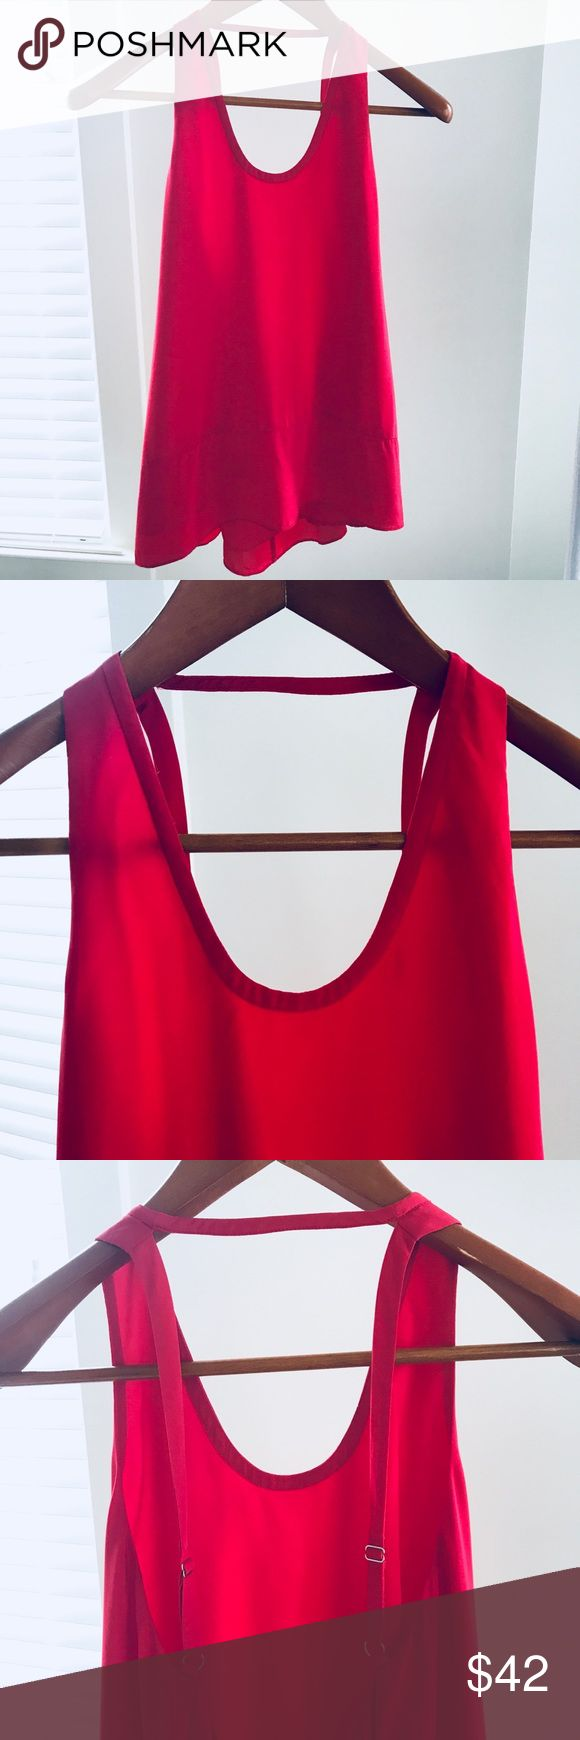 BCBGMaxAzria Top Holiday party top here!! Gorgeous vibrant red BCBG top with an open back and adjustable straps. Perfect condition. BCBGMaxAzria Tops